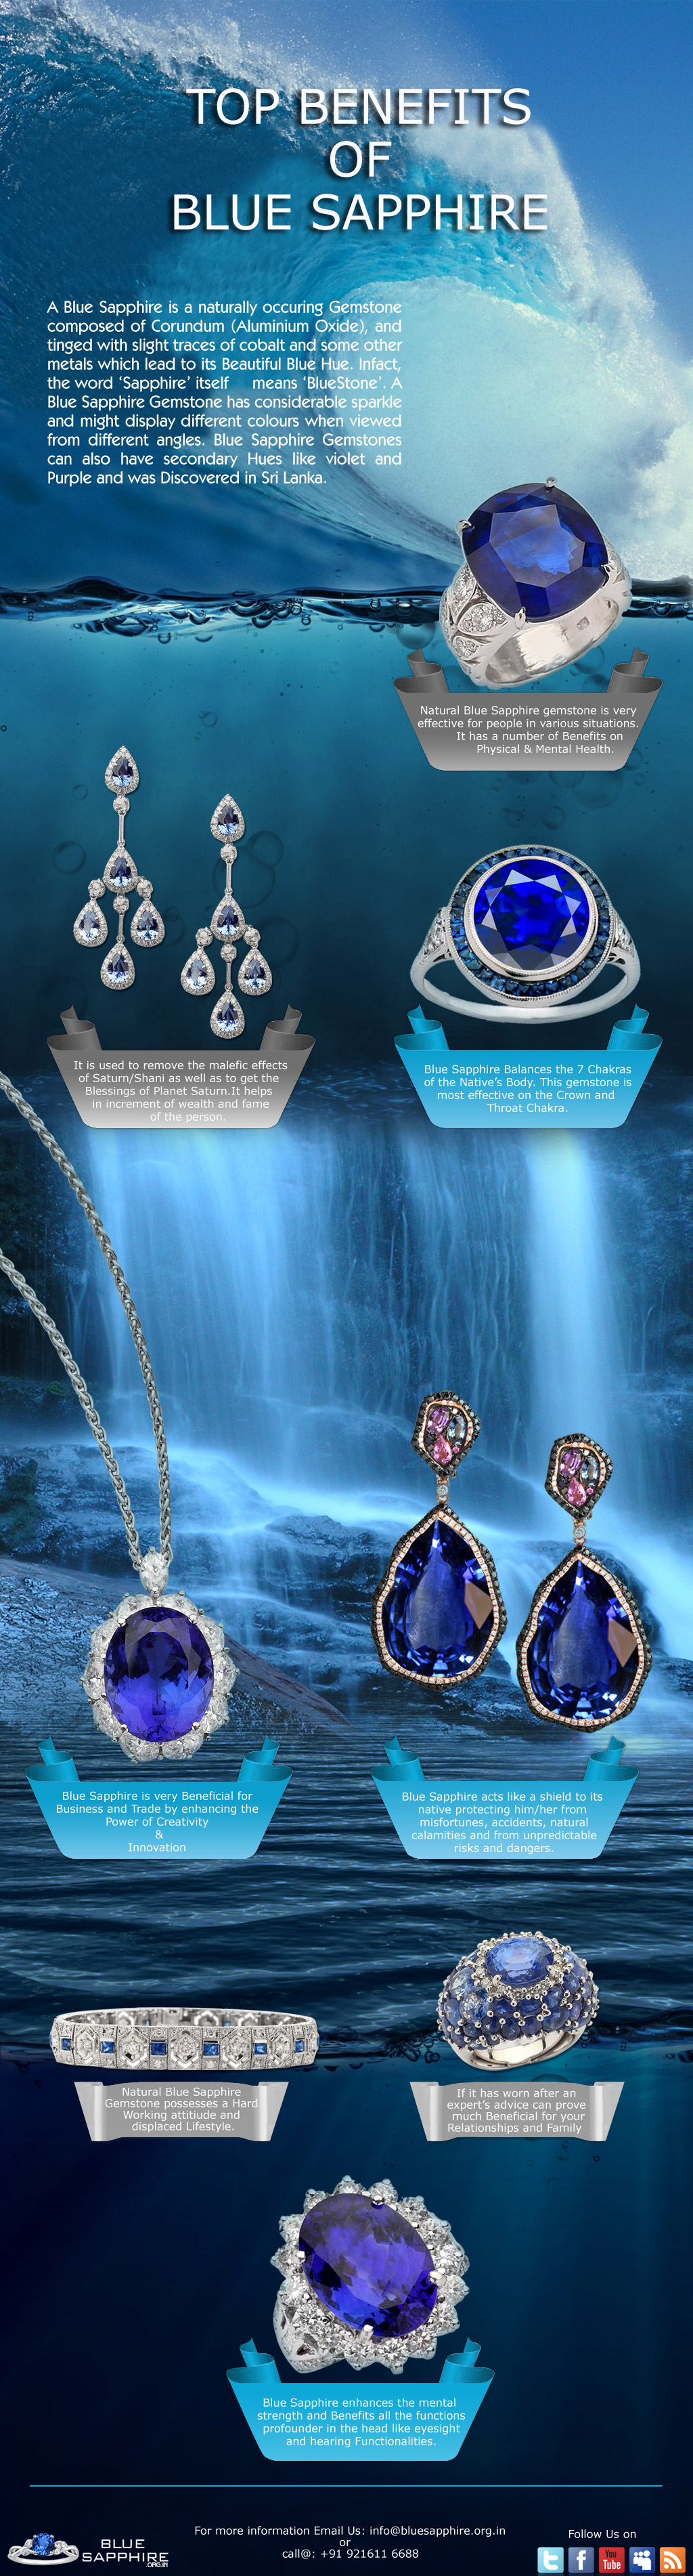 Blue Sapphire Is The Most Precious Gemstone In The Sapphire Family Blue Sapphire Is Said To Be The Gemst Gemstones Gemstone Prices Natural Gemstones